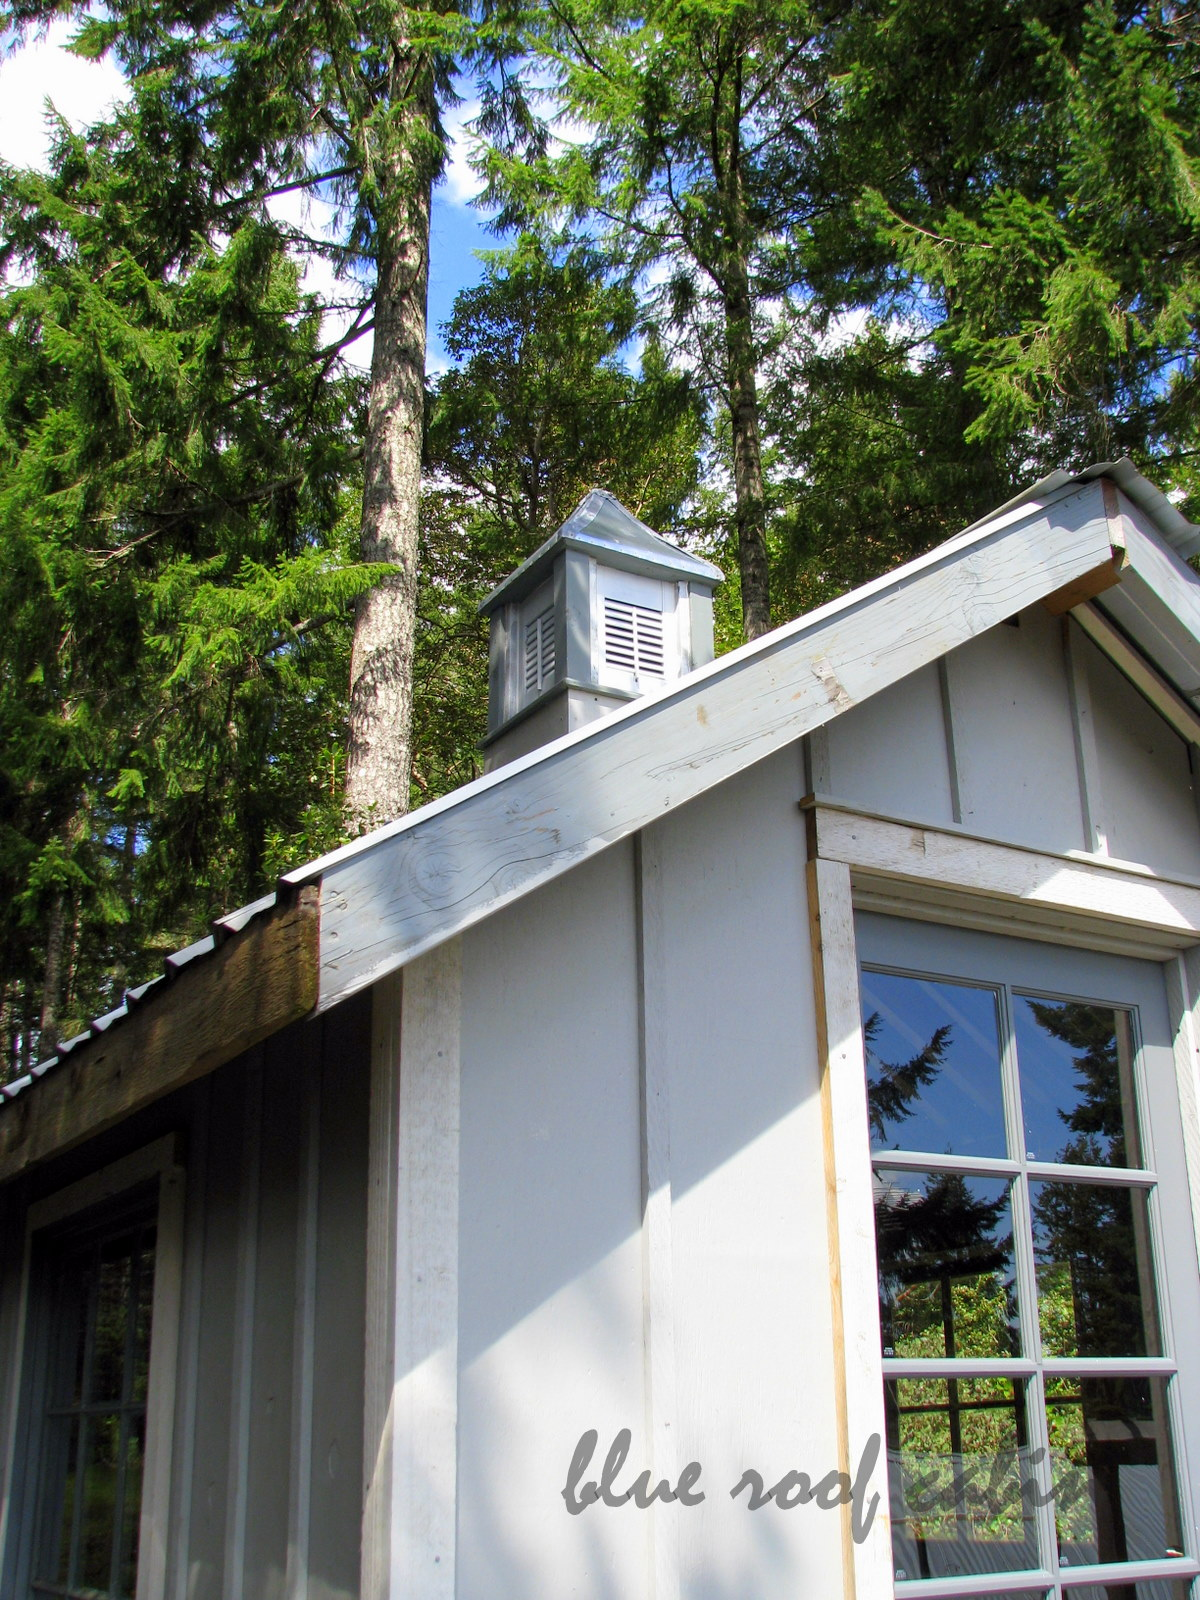 Build shed doors i got shed building for dummies last for Shed roof cabin